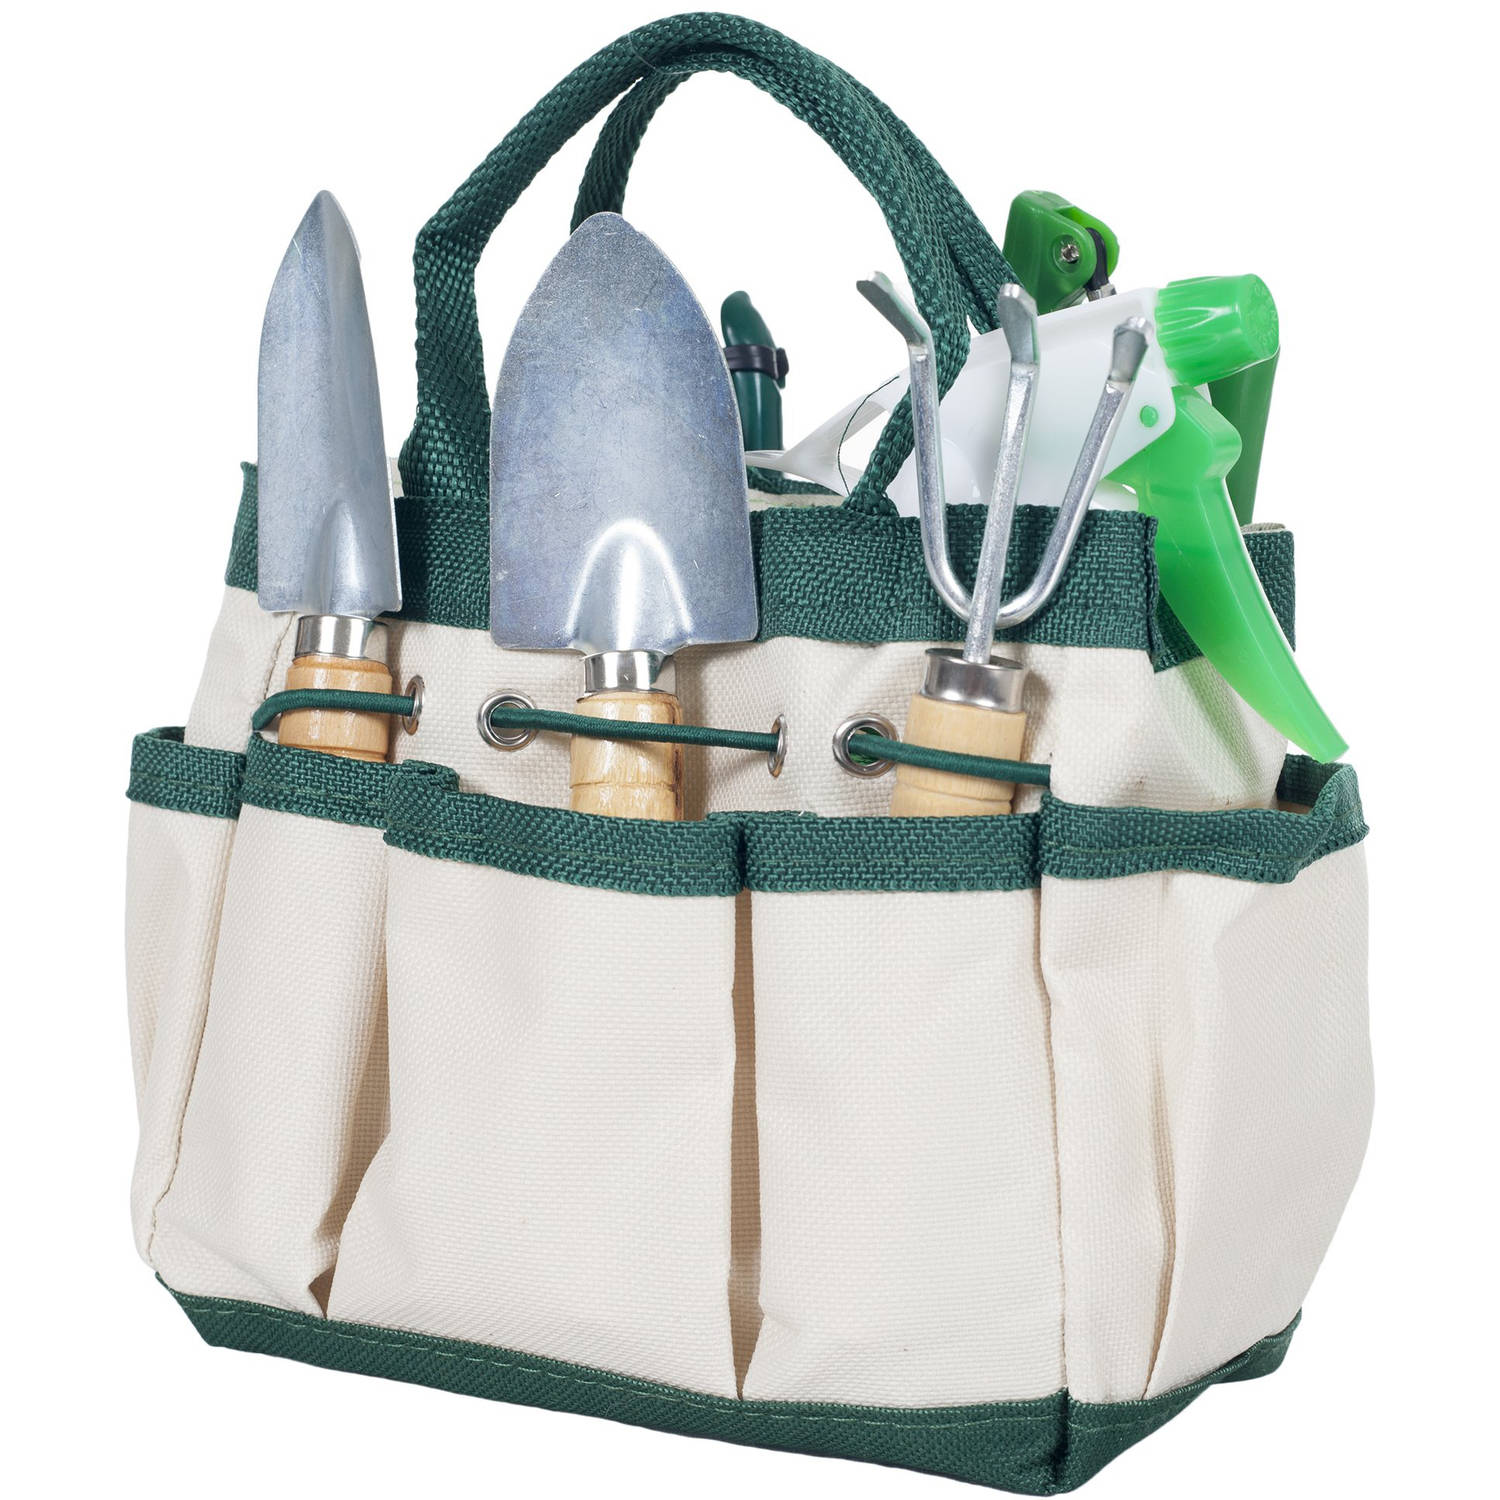 7 Piece Gardening Tool Set – Mini Planting and Repotting Kit and Carrying Tote Bag Organizer for Succulents, Herbs, and Bonsai Plants by Pure Garden